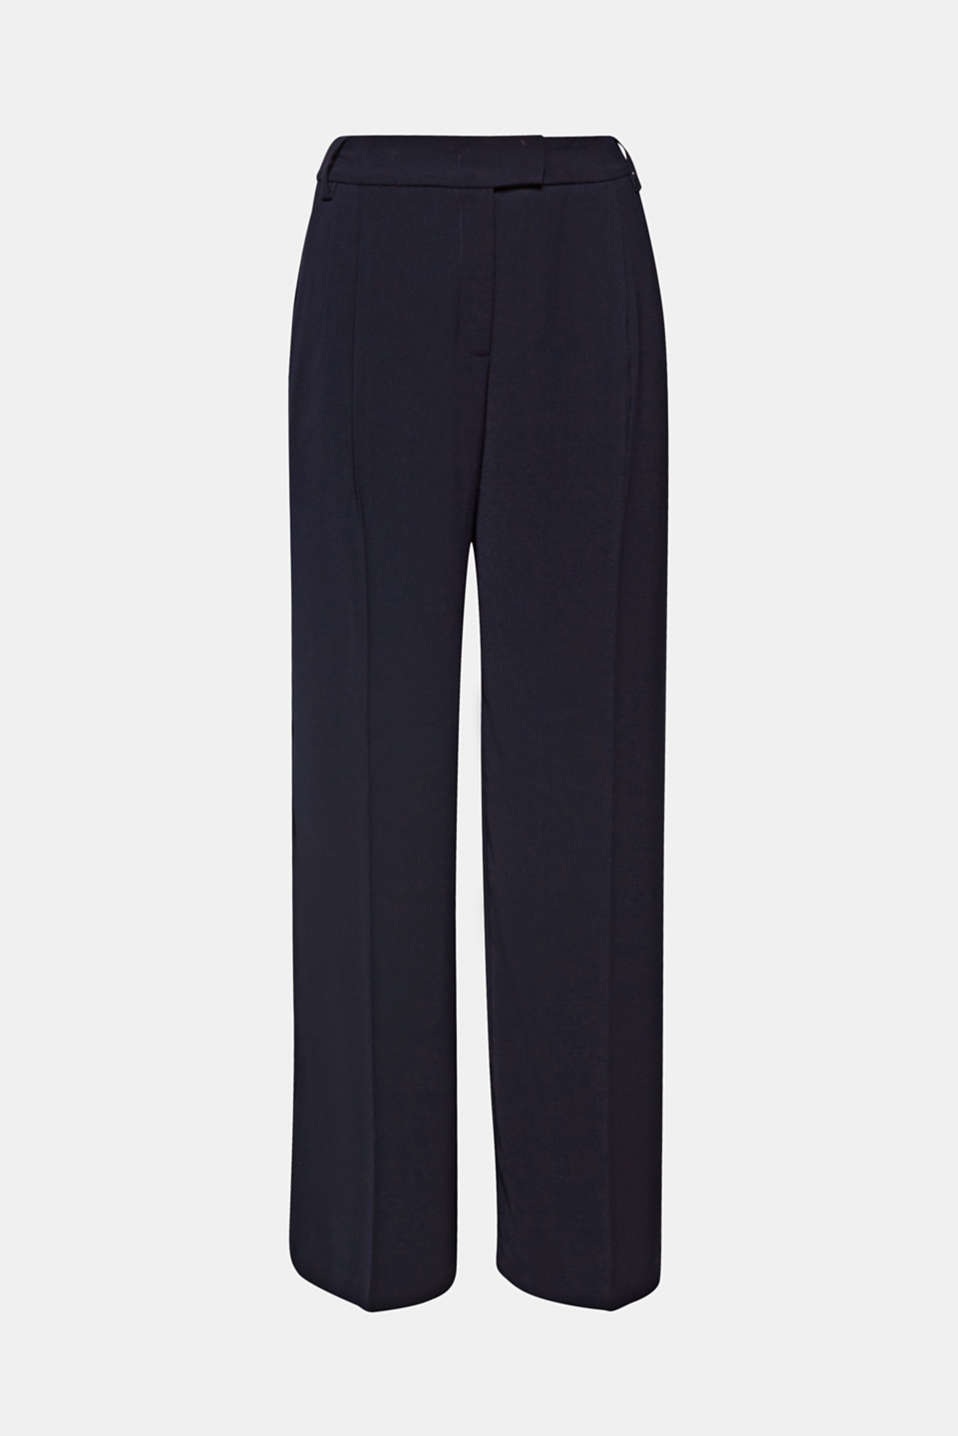 Modern and super chic: these softly draped crêpe trousers with added stretch for comfort have an extra wide leg with elegant pressed pleats!